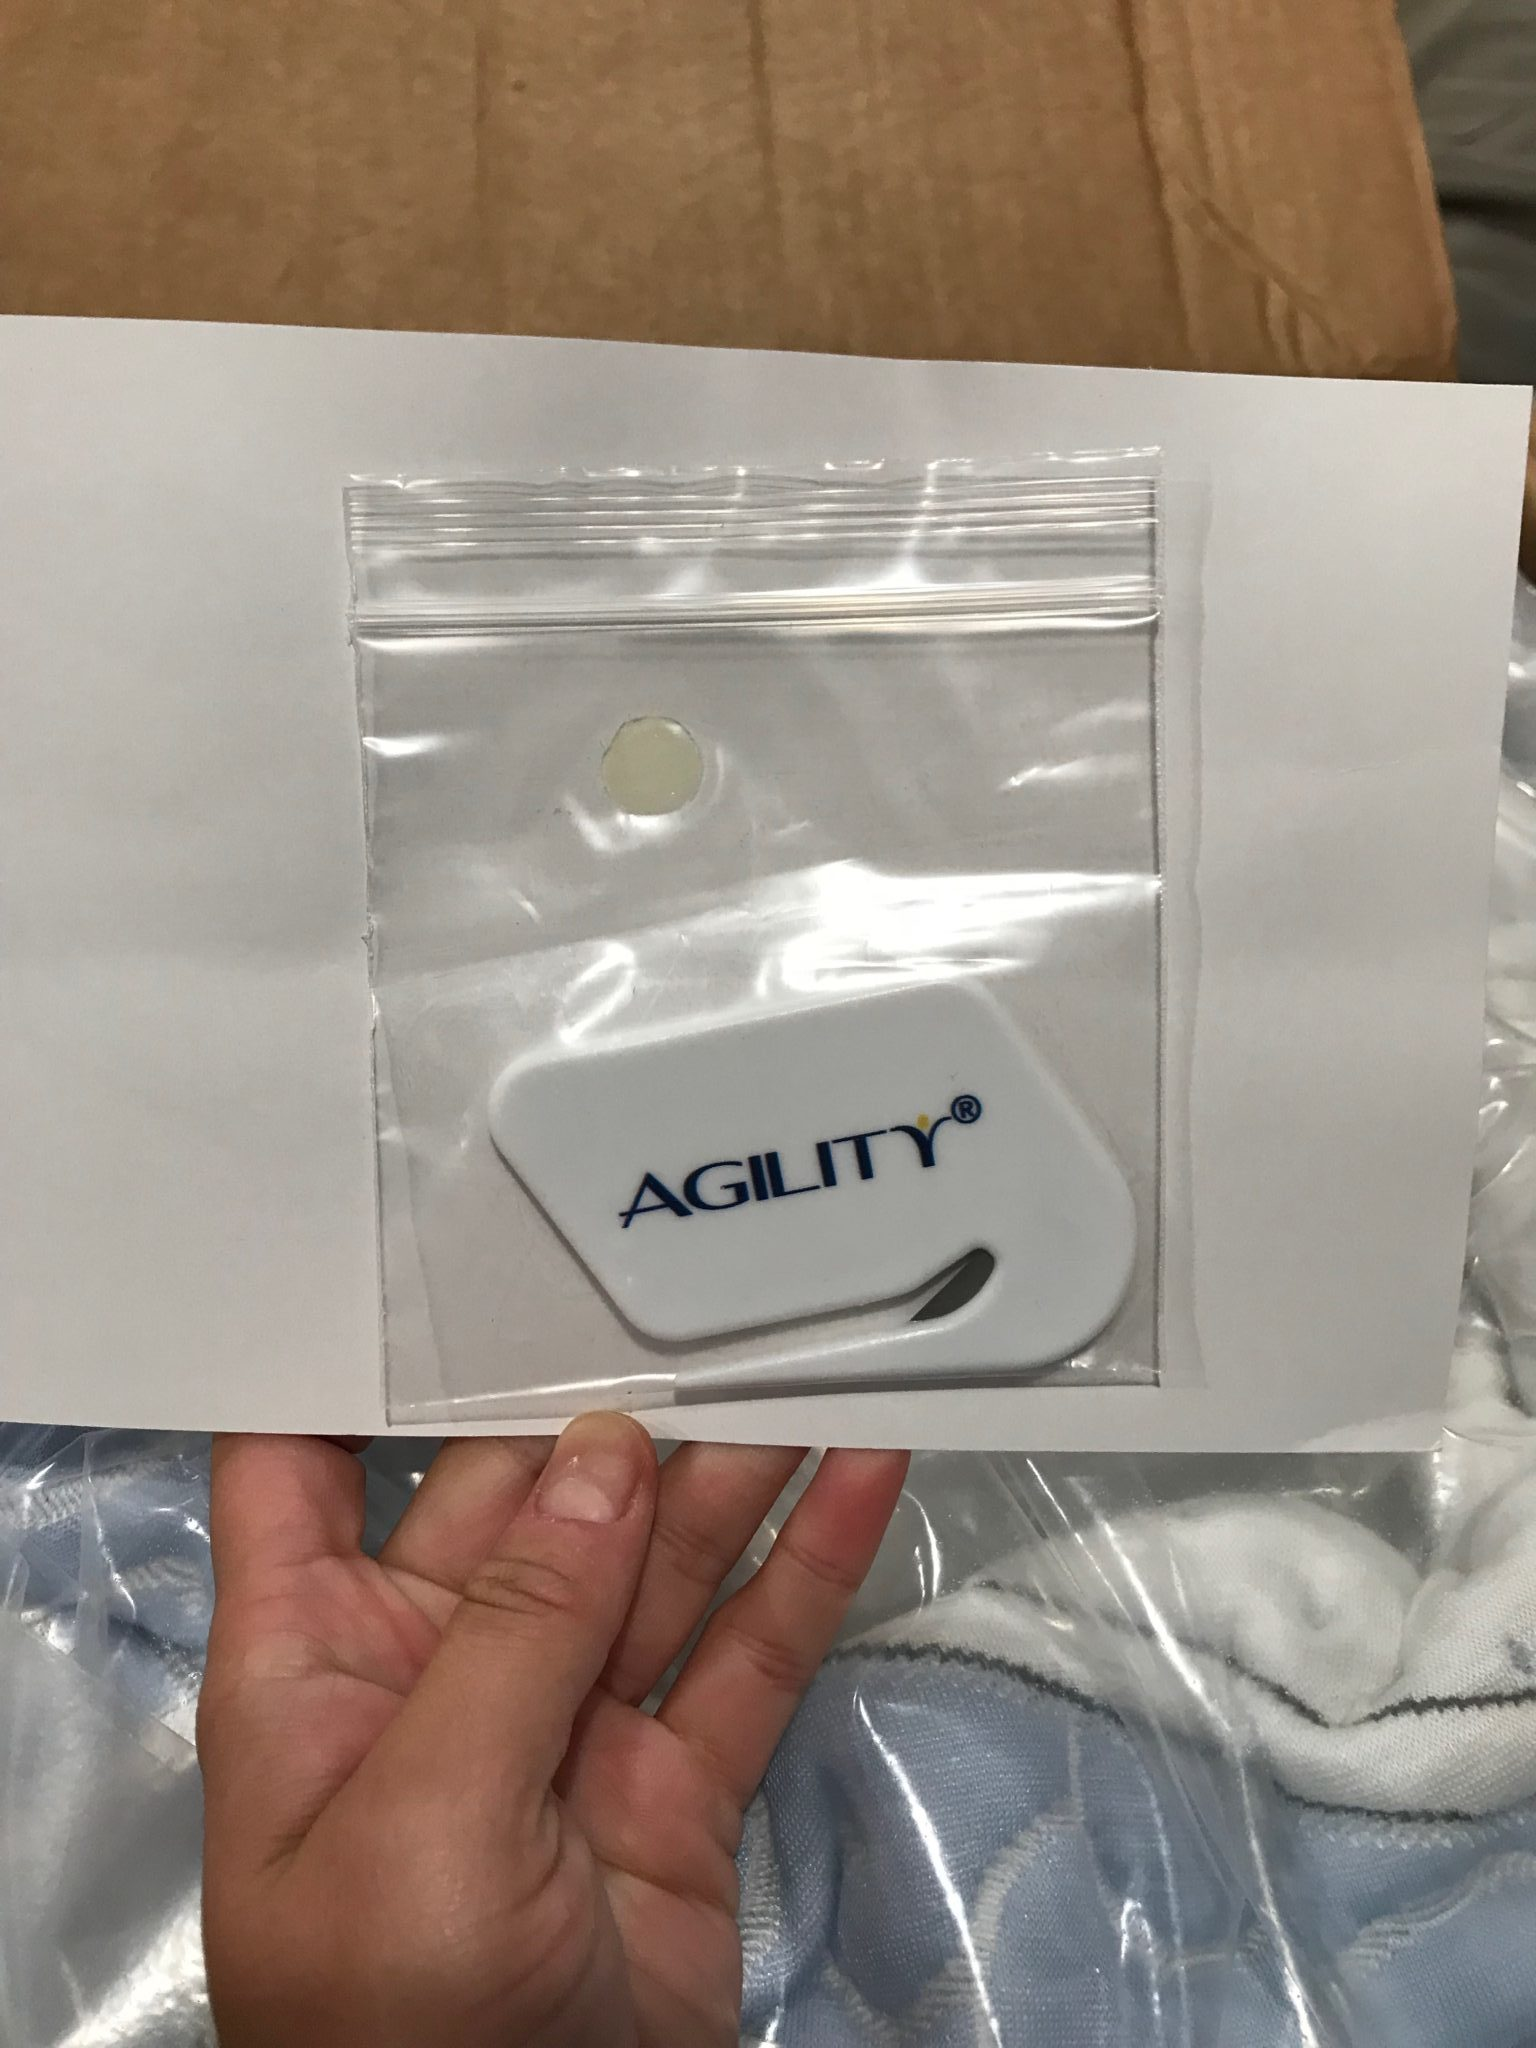 Agility Mattress Review it even comes with a cutting tool to remove the plastic wrapping of the new mattress